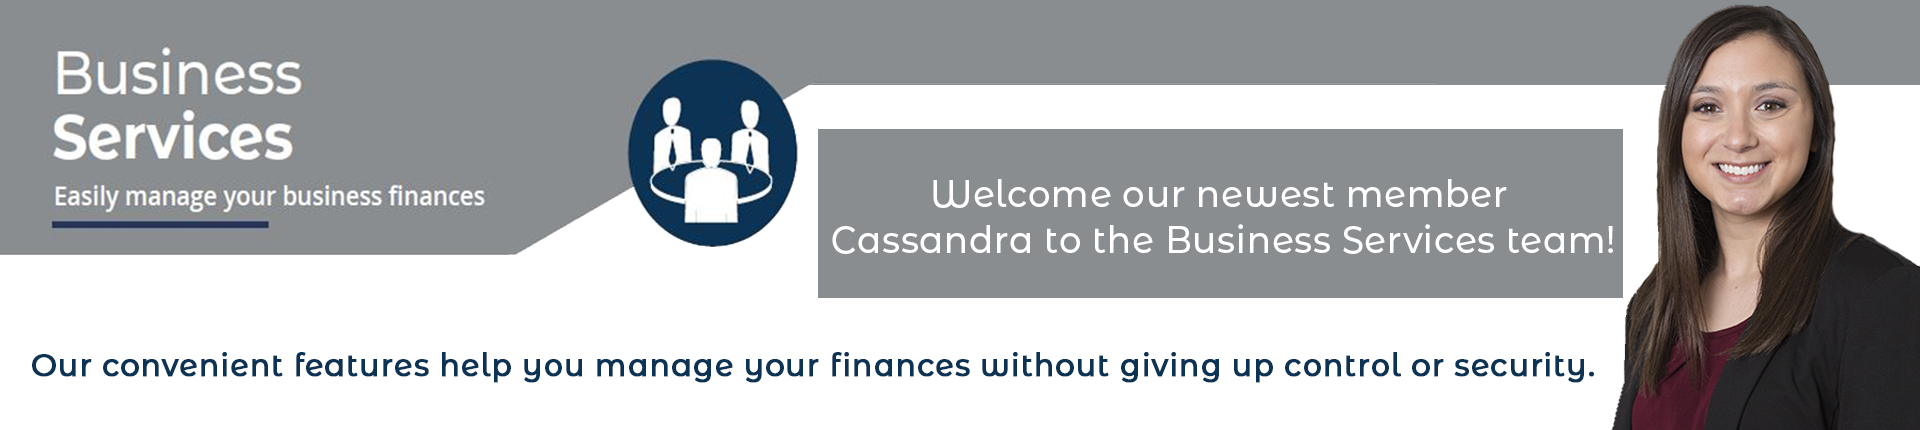 Welcome Cassandra to the Business Services team.